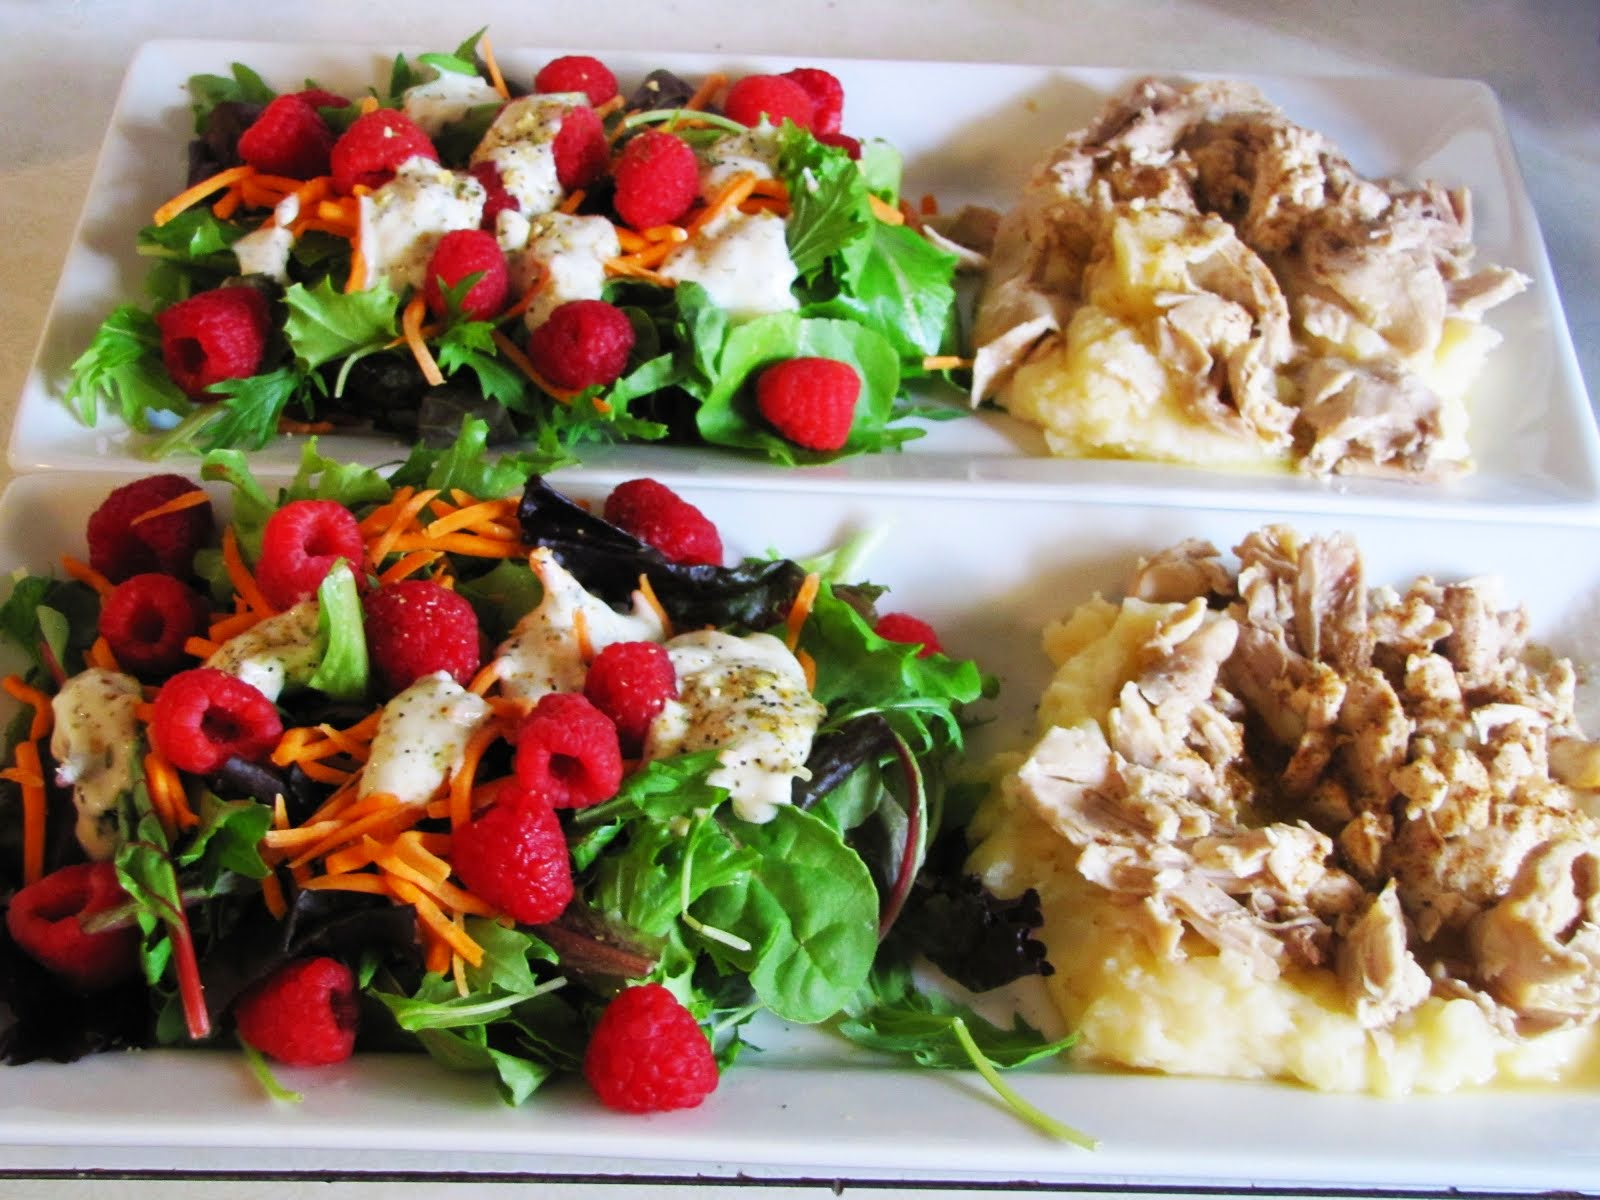 Raspberry Salad with Chicken & Mashed Potatoes/Broth